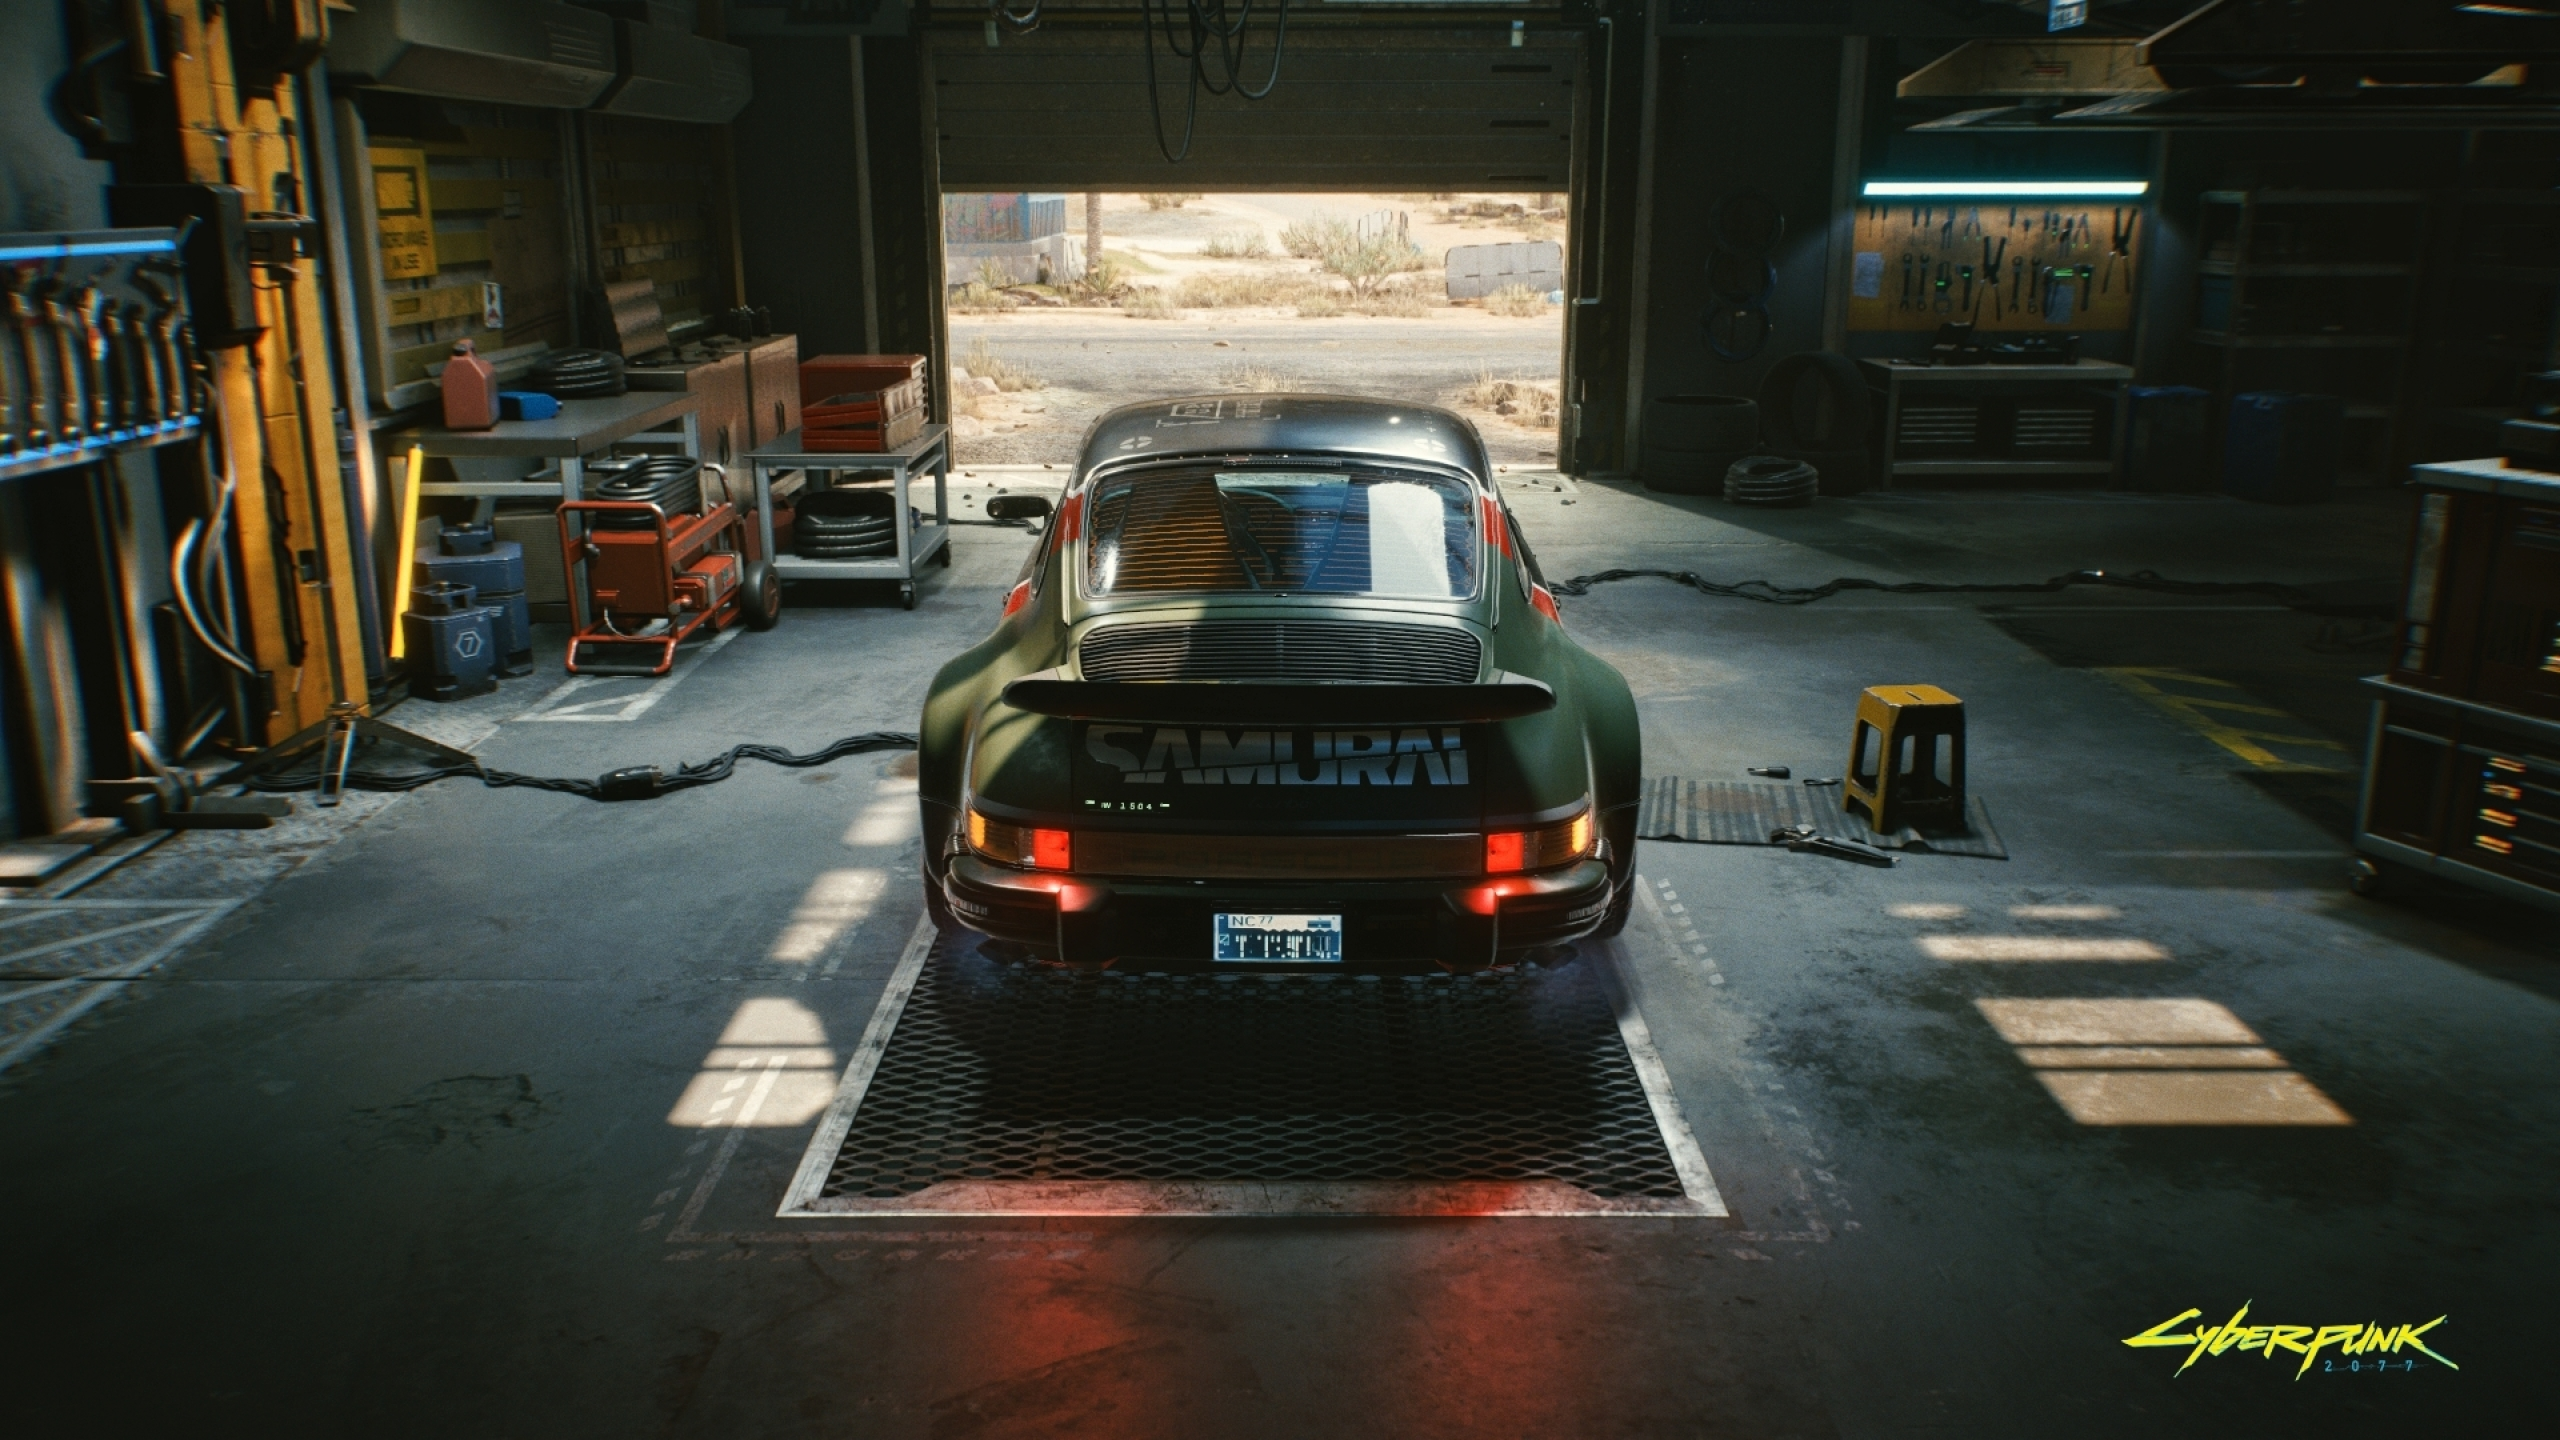 2560x1440 Cyberpunk 2077 Porsche 911 Turbo 1440p Resolution Wallpaper Hd Games 4k Wallpapers Images Photos And Background